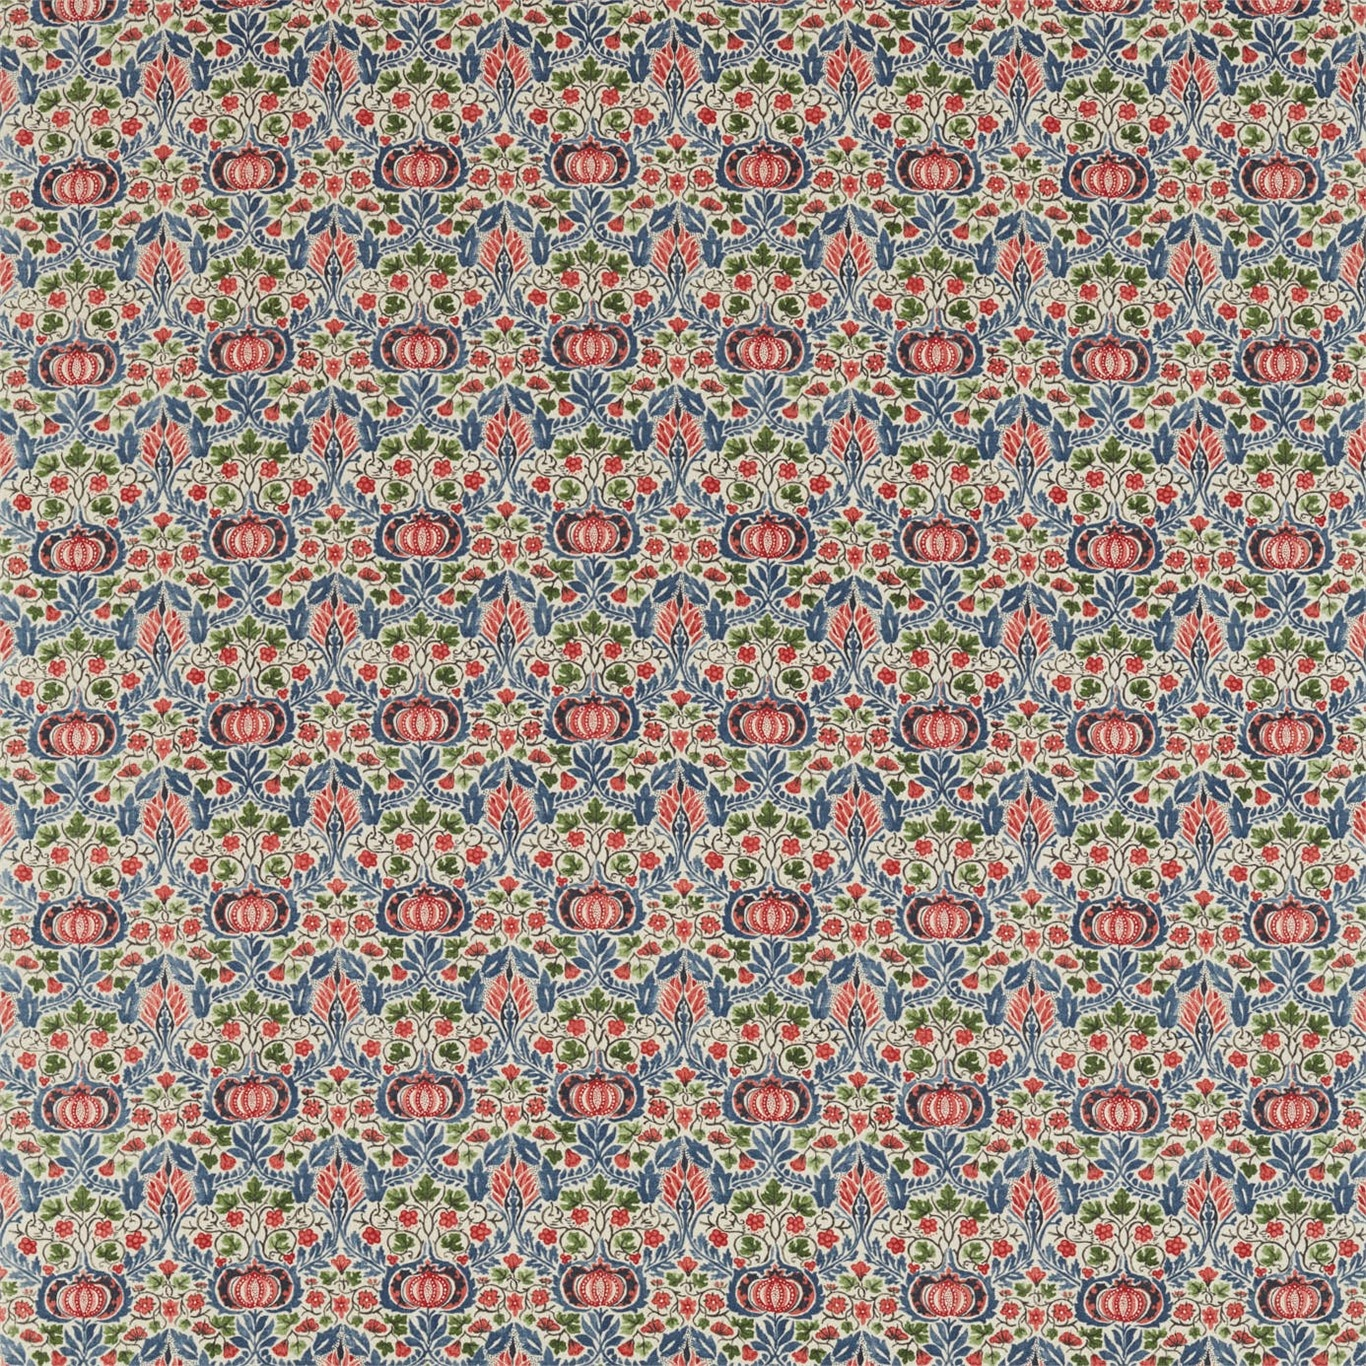 Image of Morris & Co Little Chintz Indigo/Carmine Fabric 226407